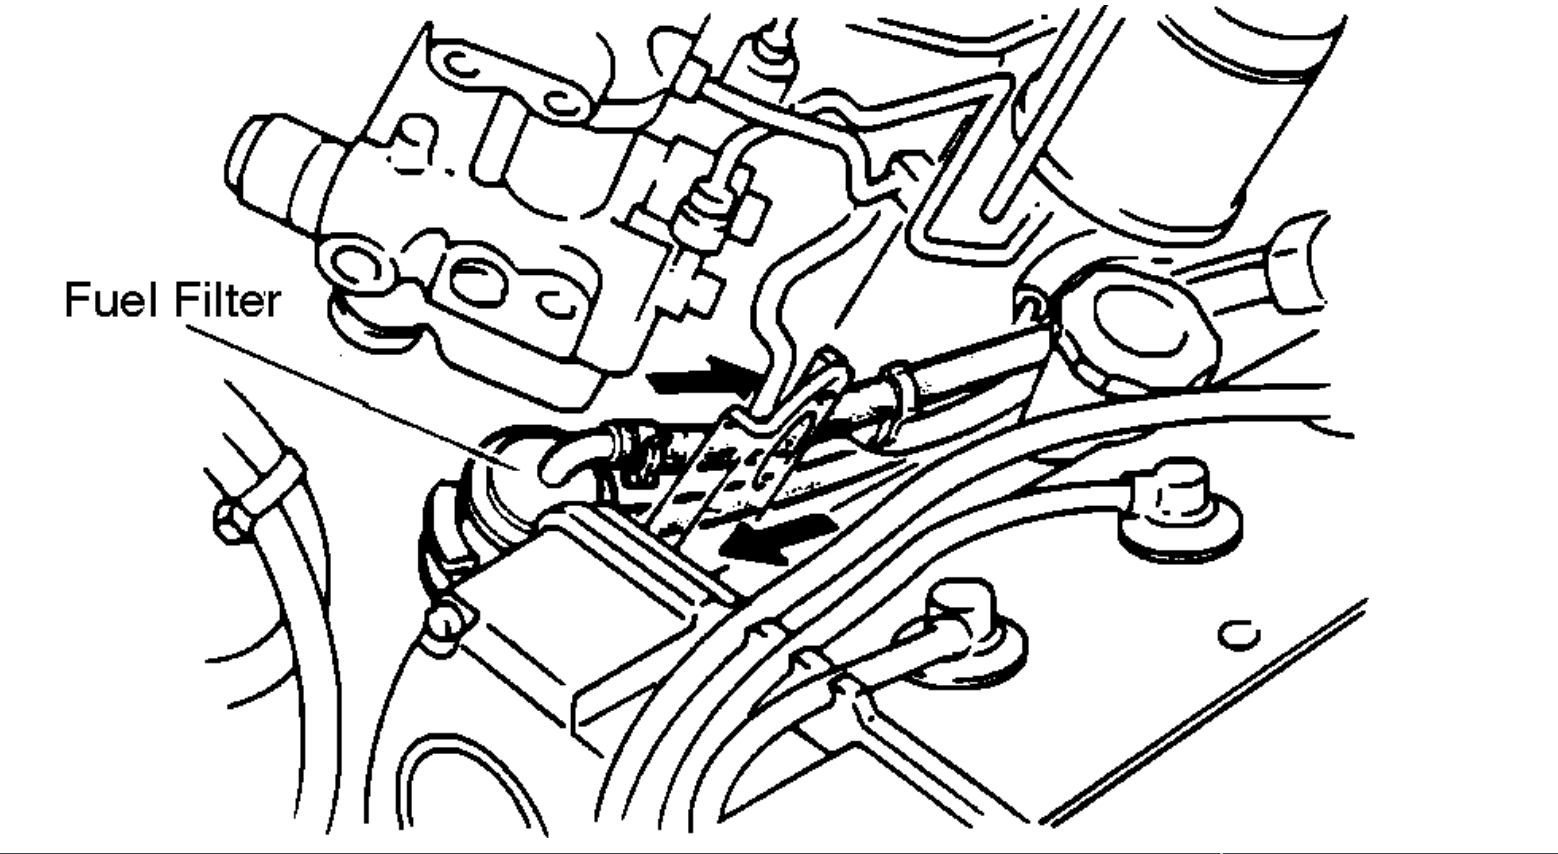 Fuel Filter Location: Looking for Fuel Filter Location.